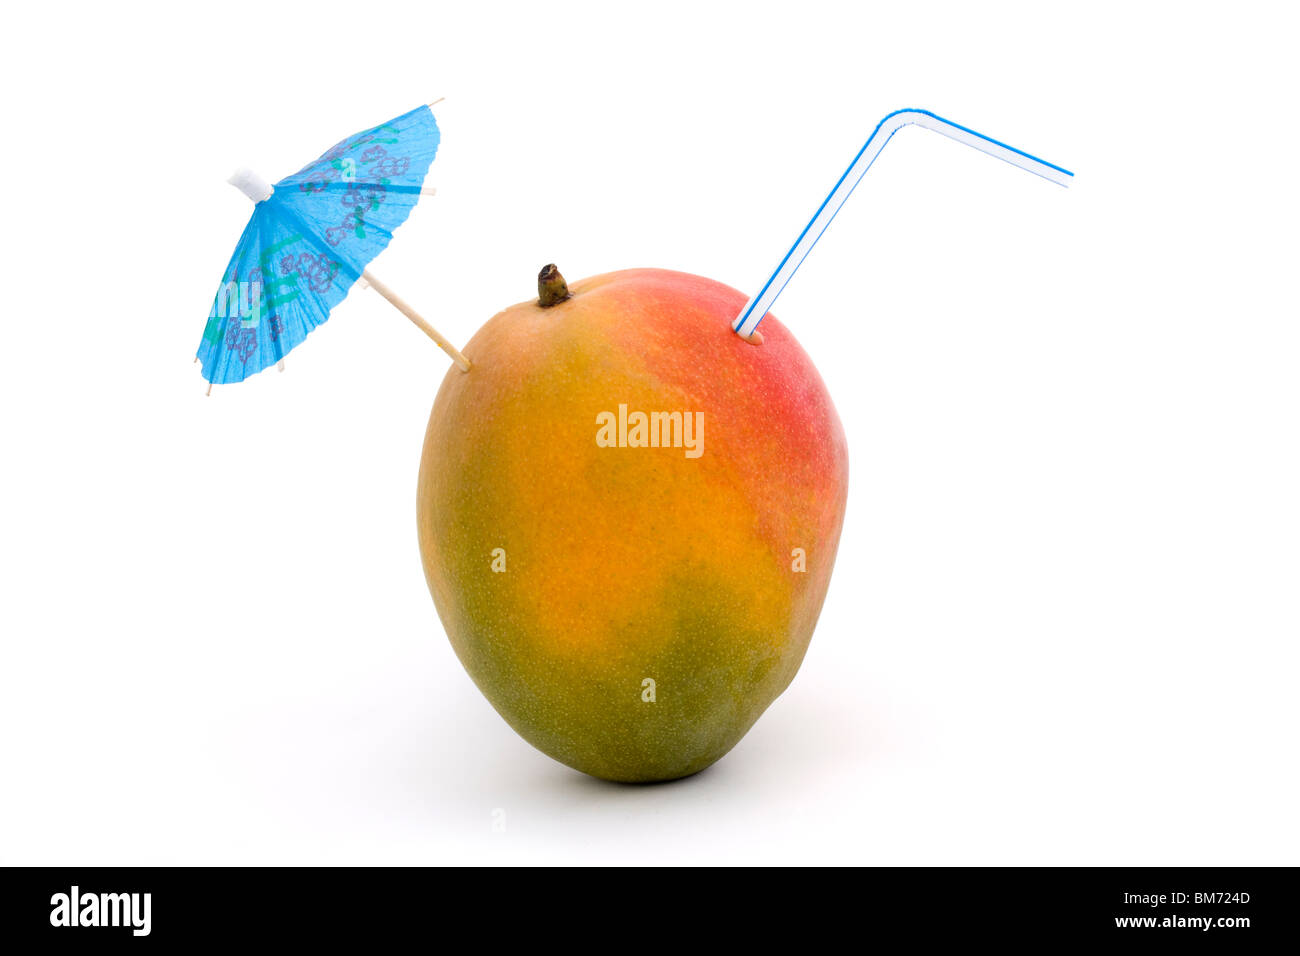 ripe mango with straw and umbrella on a white background - Stock Image